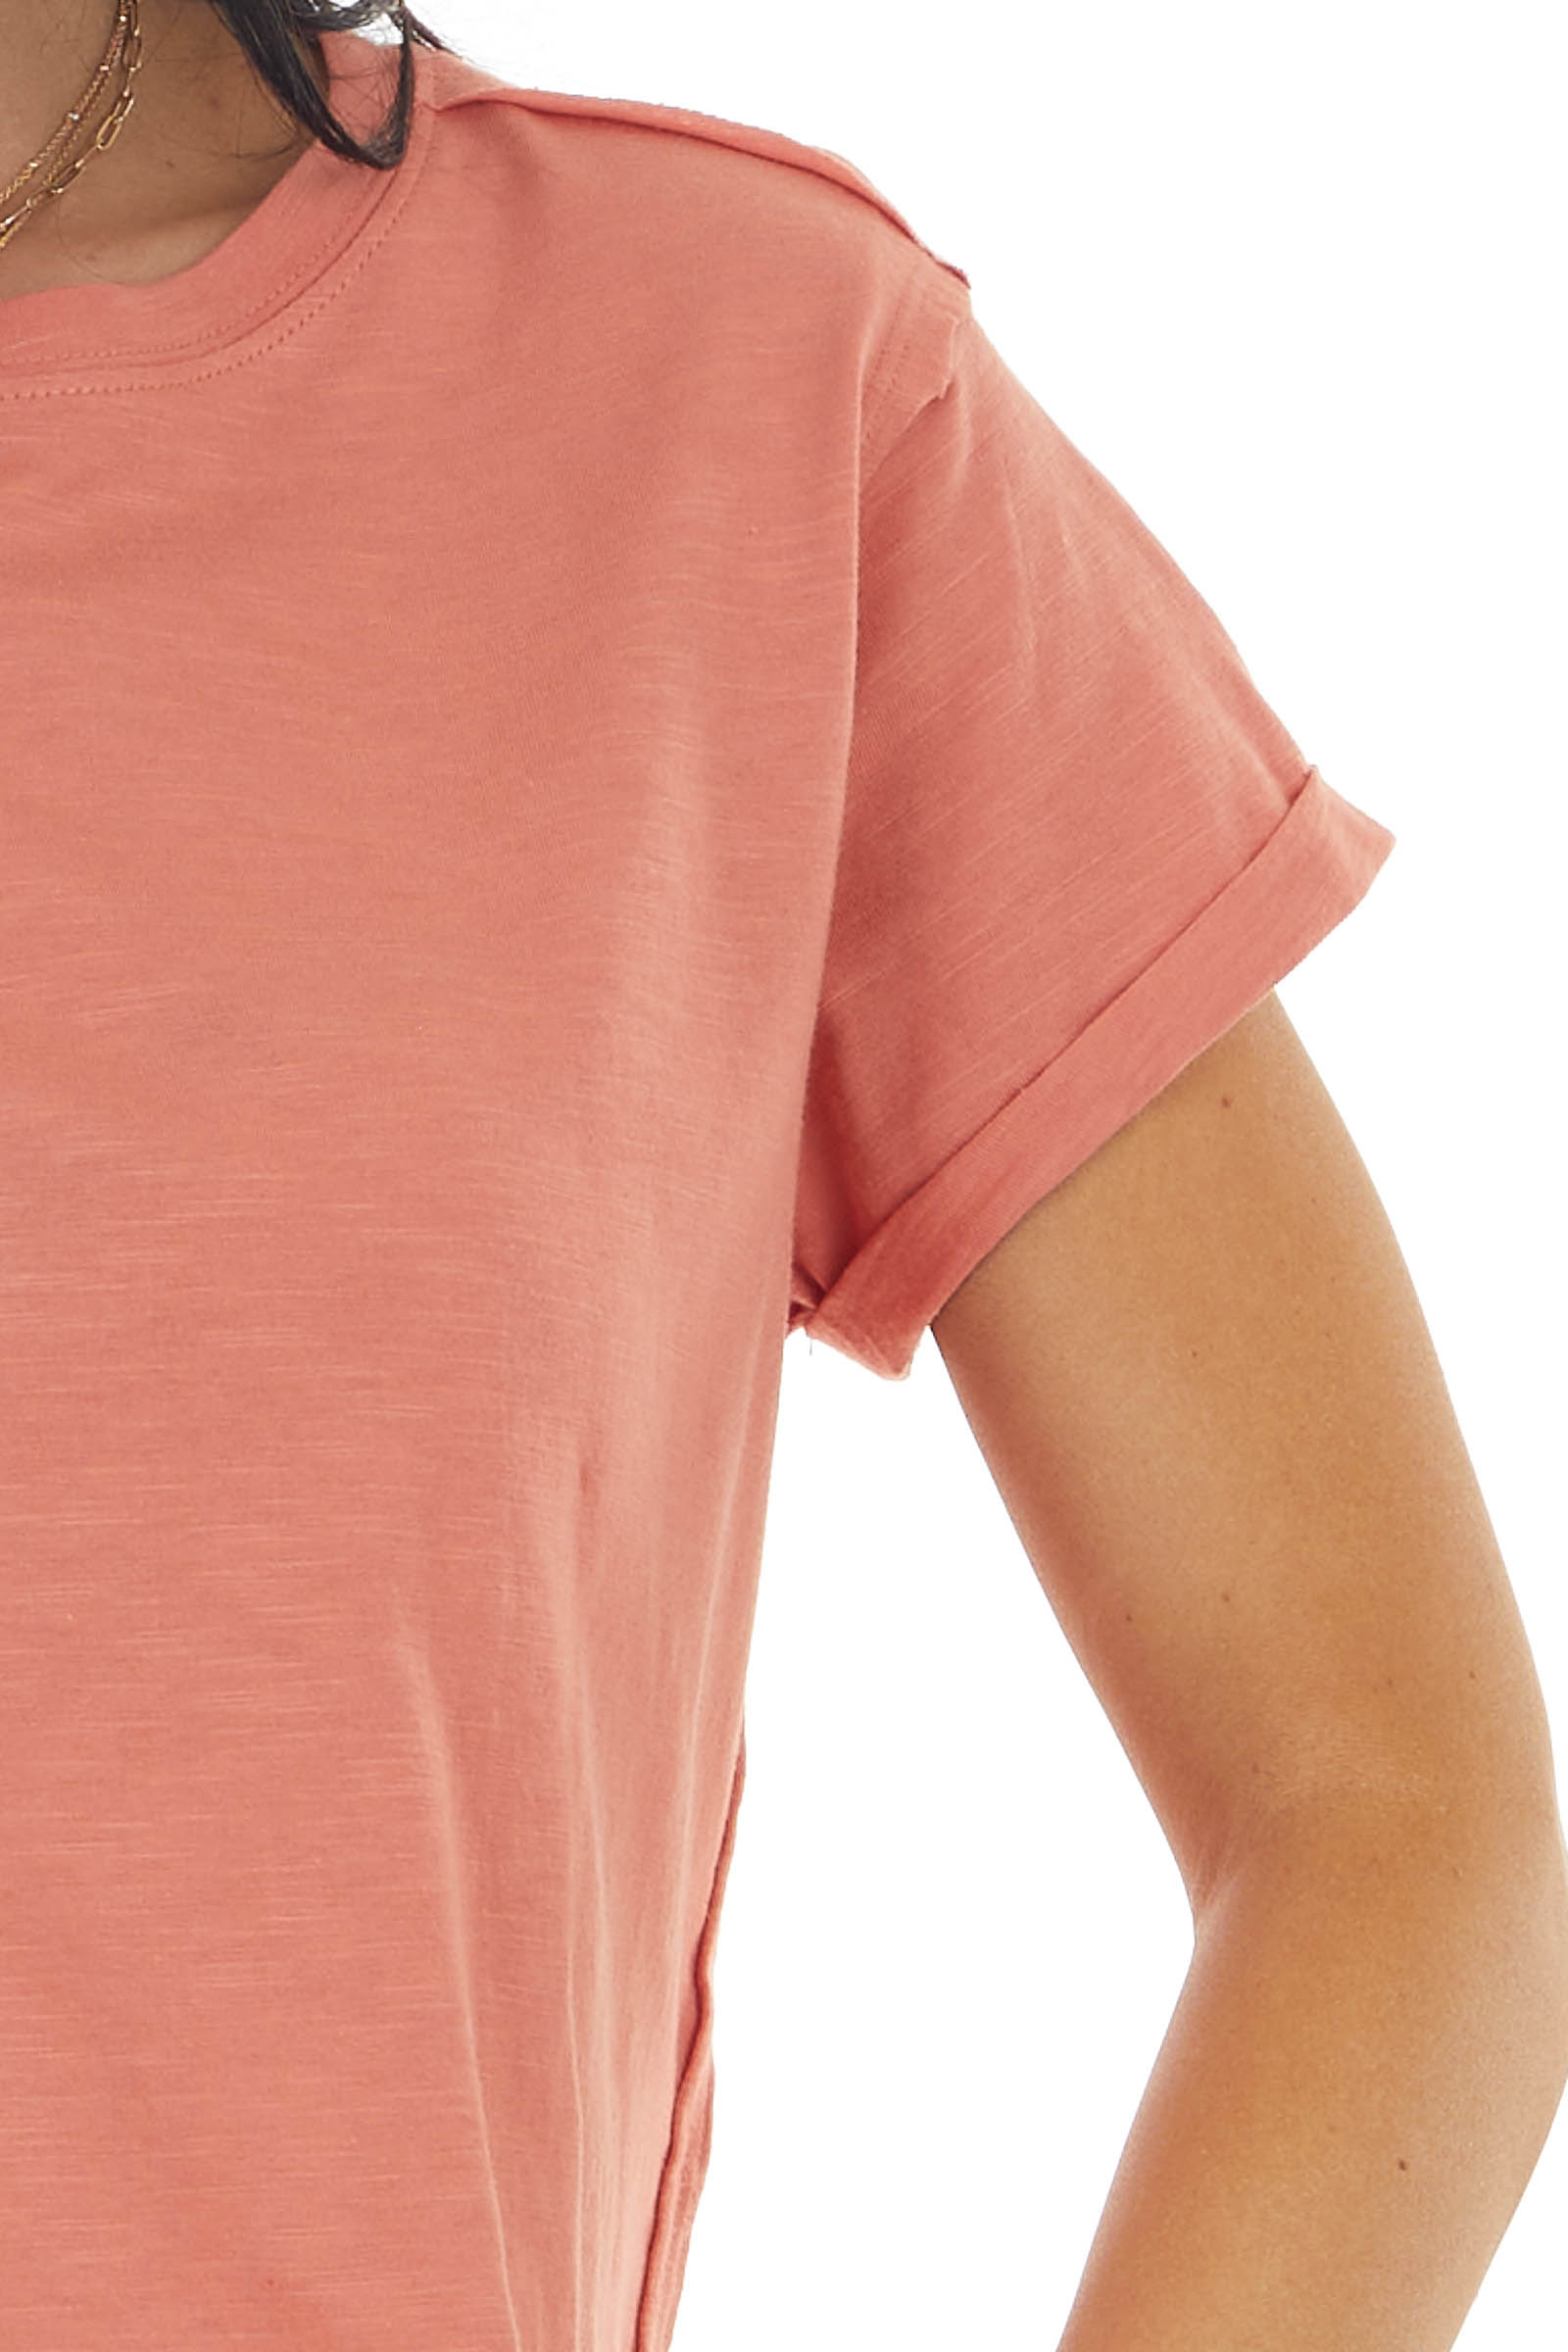 Marmalade Short Sleeve Knit Cropped Tee with Raw Edges